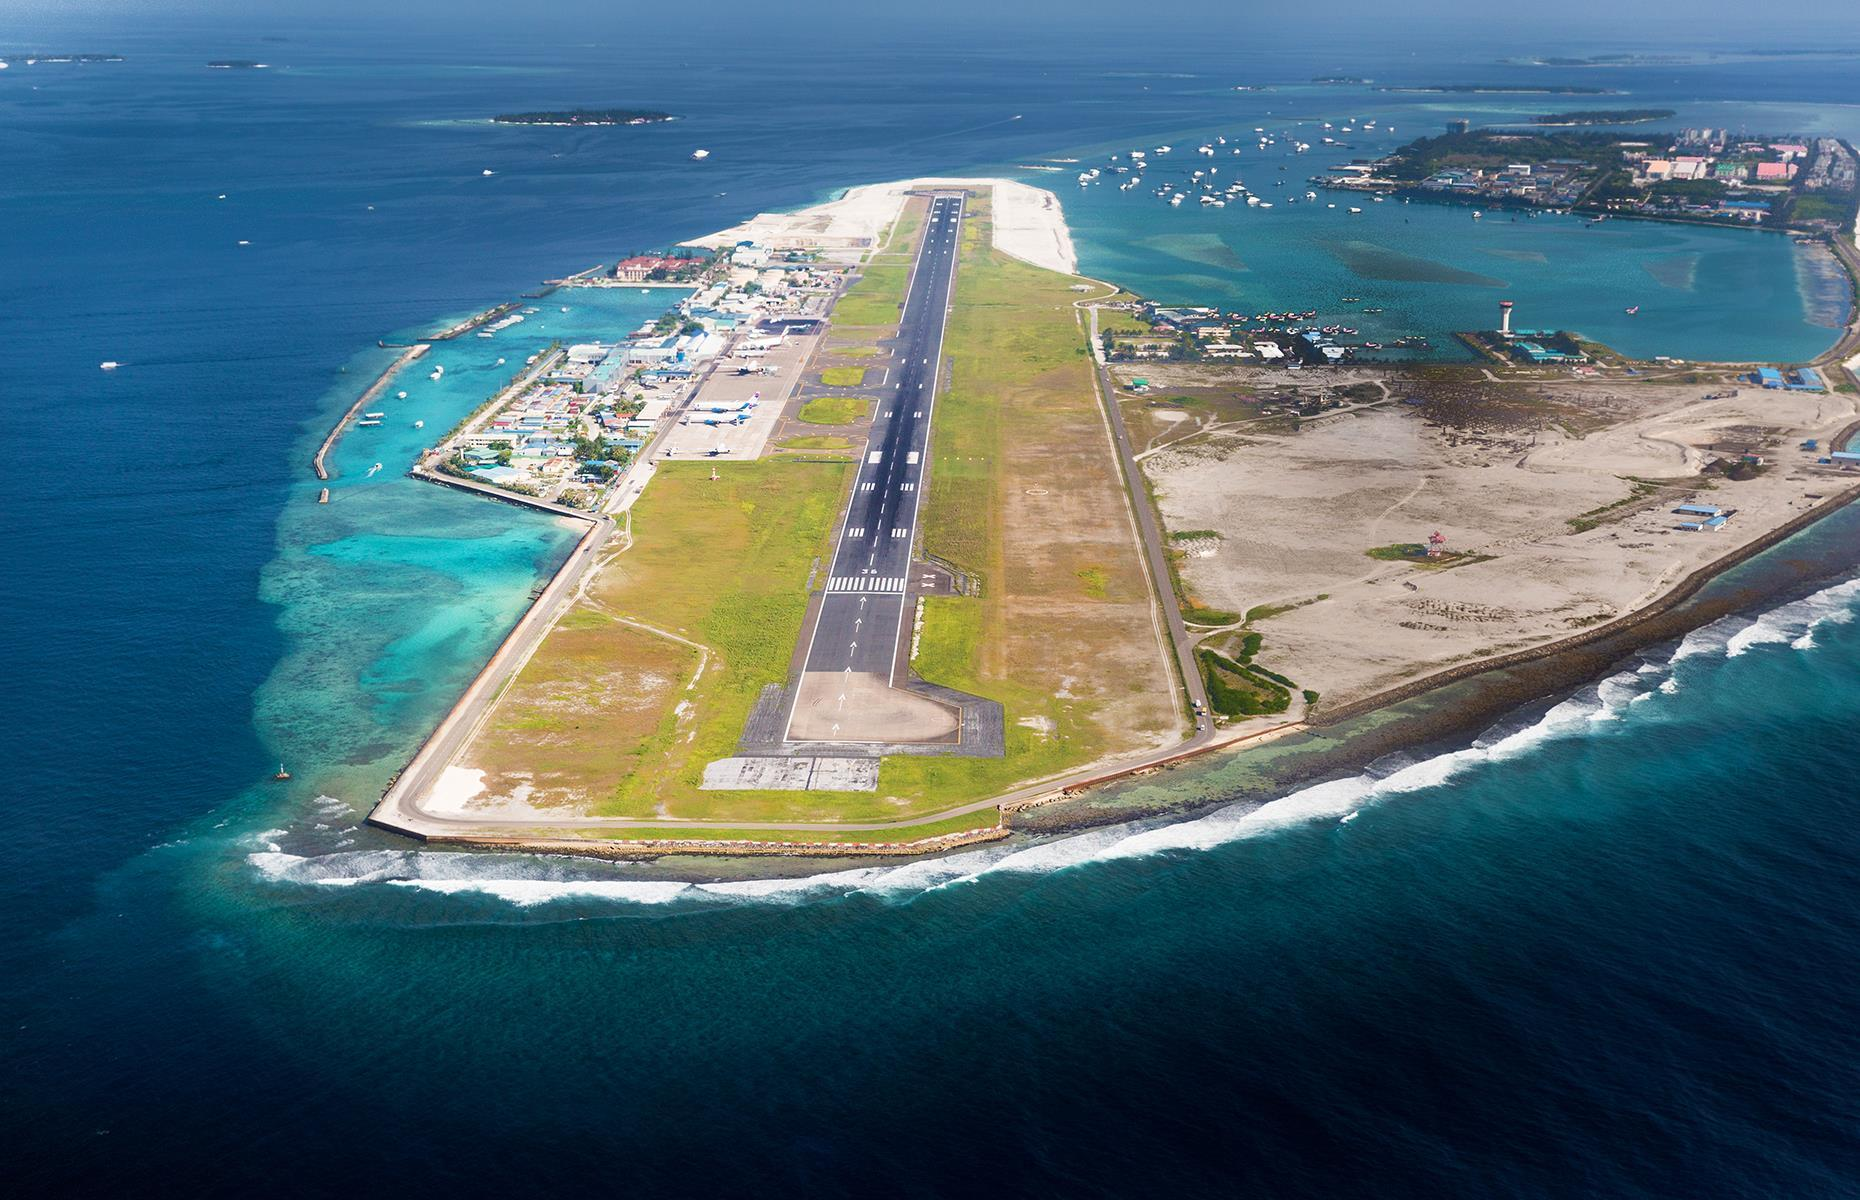 Slide 24 of 31: This is the main international airport for the Maldives, located on Hulhule Island in the North Male Atoll. So if you want to dip your toes in the pristine blue waters, you'll have to stomach the gut-wrenching landing that almost sees the plane take a dip too.